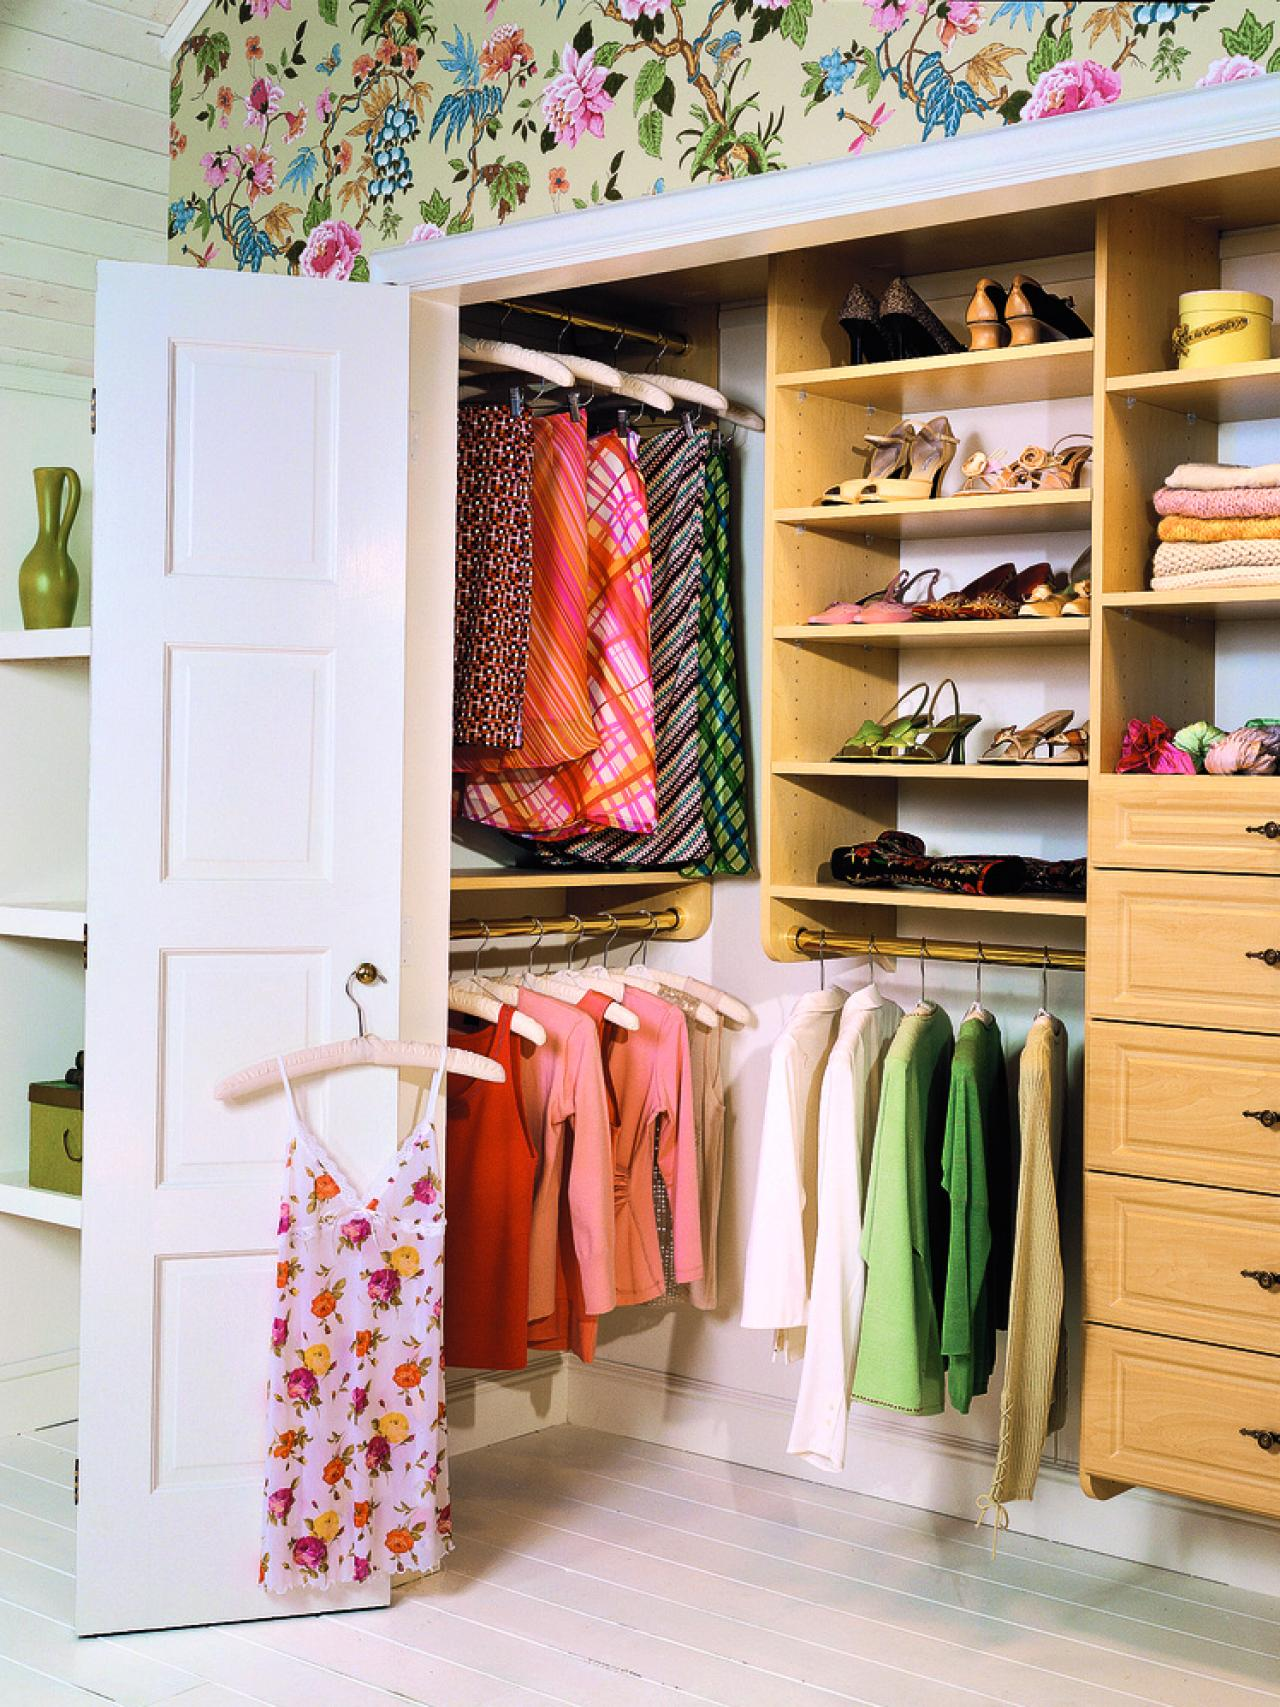 Charmant Amusing Design Of The Closet Organizers Ideas With Brown Wooden Shelves  Added With White Wall And